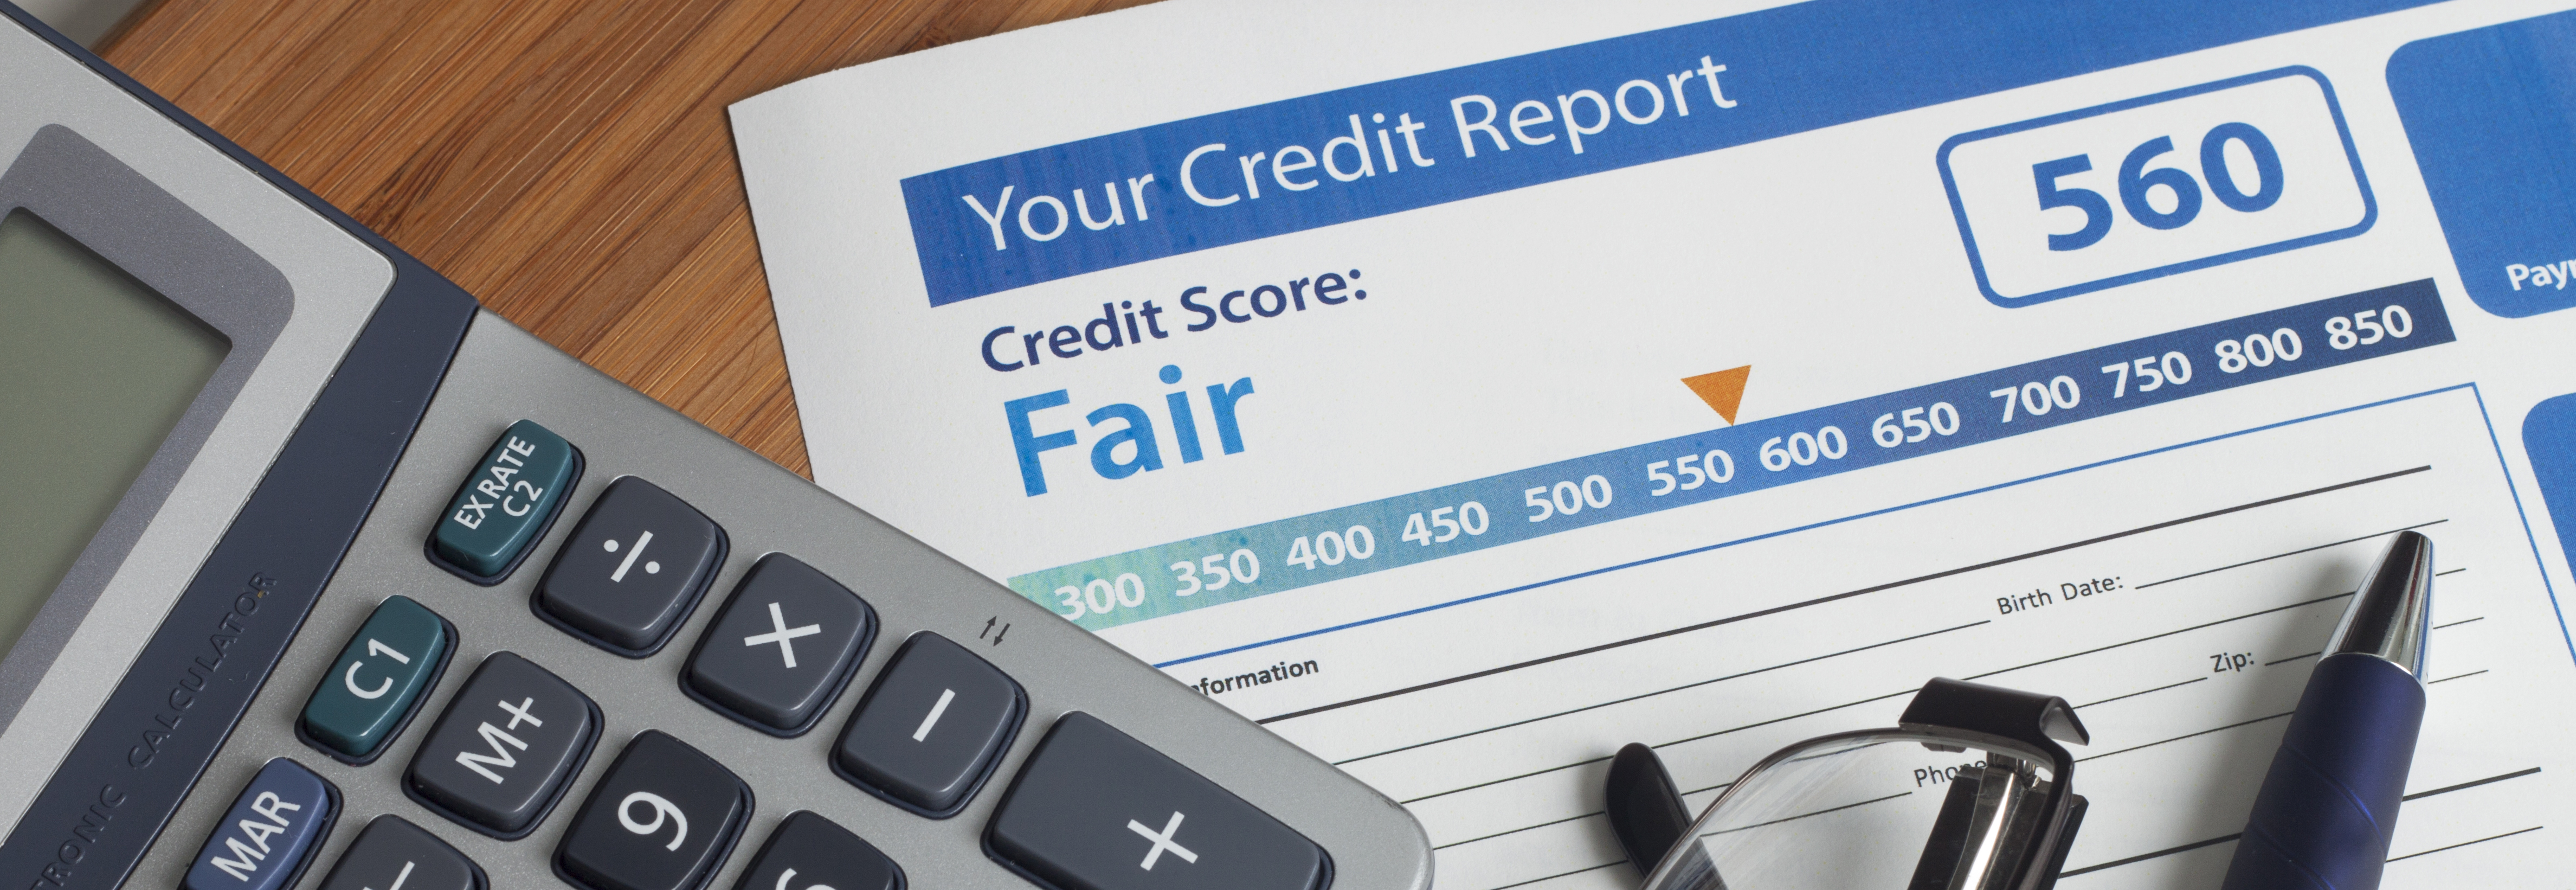 FACTA How To Get A Free Credit Report